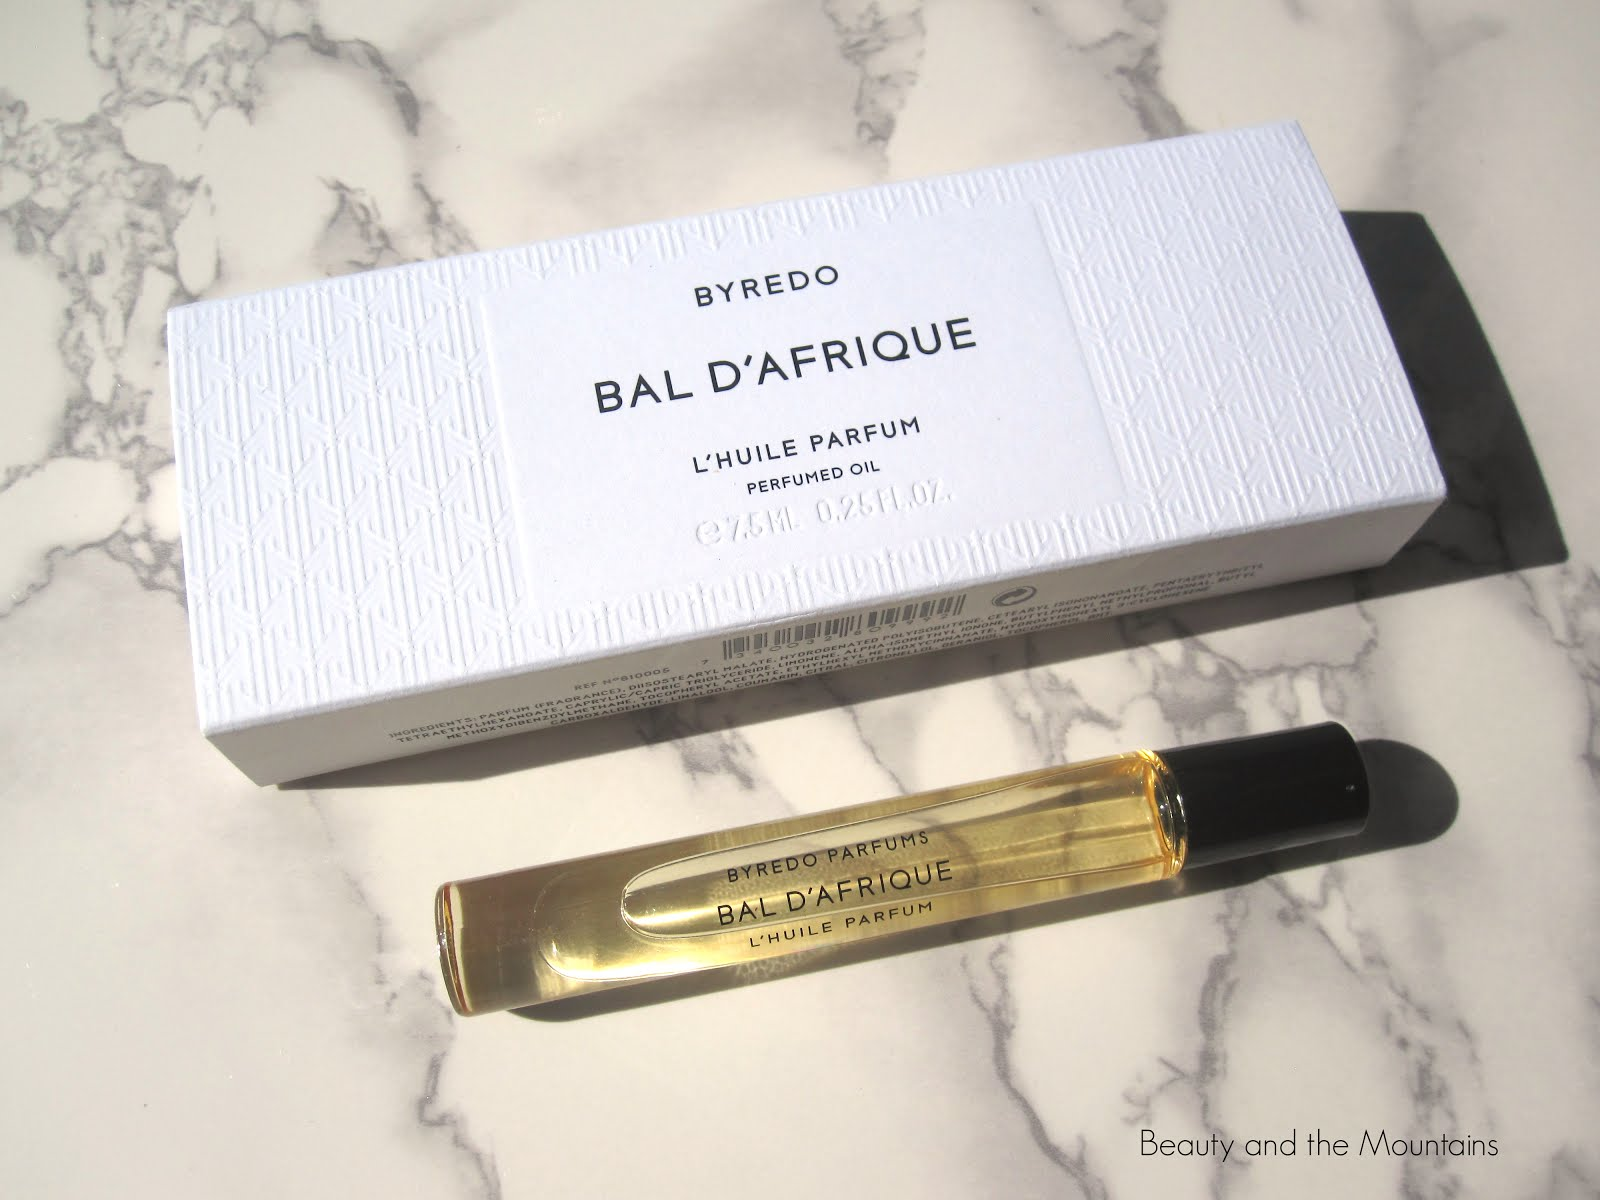 9a528c0088c3 Beauty and the Mountains  BYREDO Perfumed Oil - Bal D Afrique